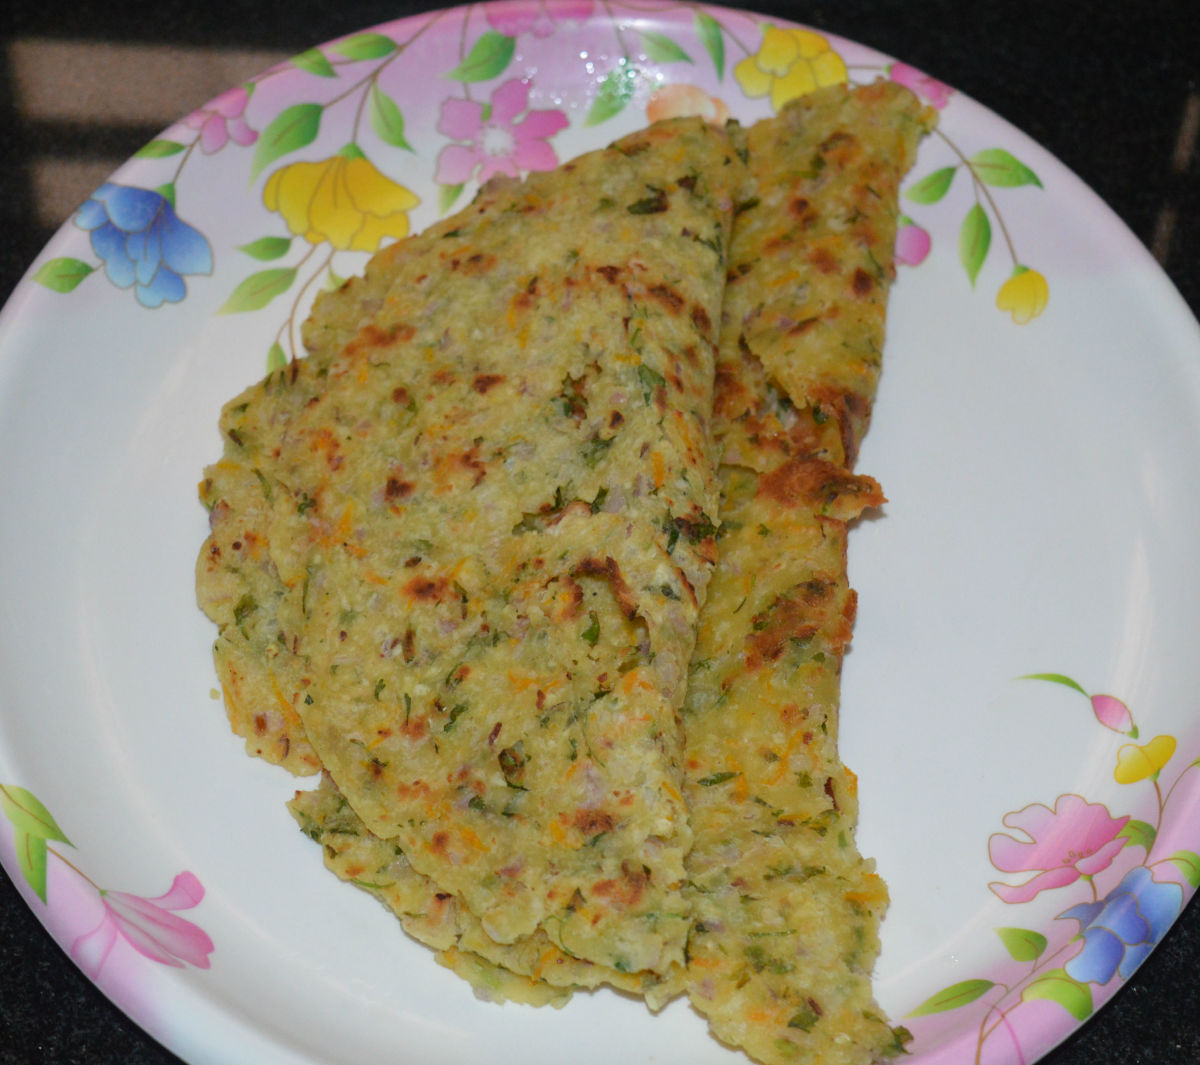 Masala Akki Rotti, or Spicy Rice Flour Flatbread